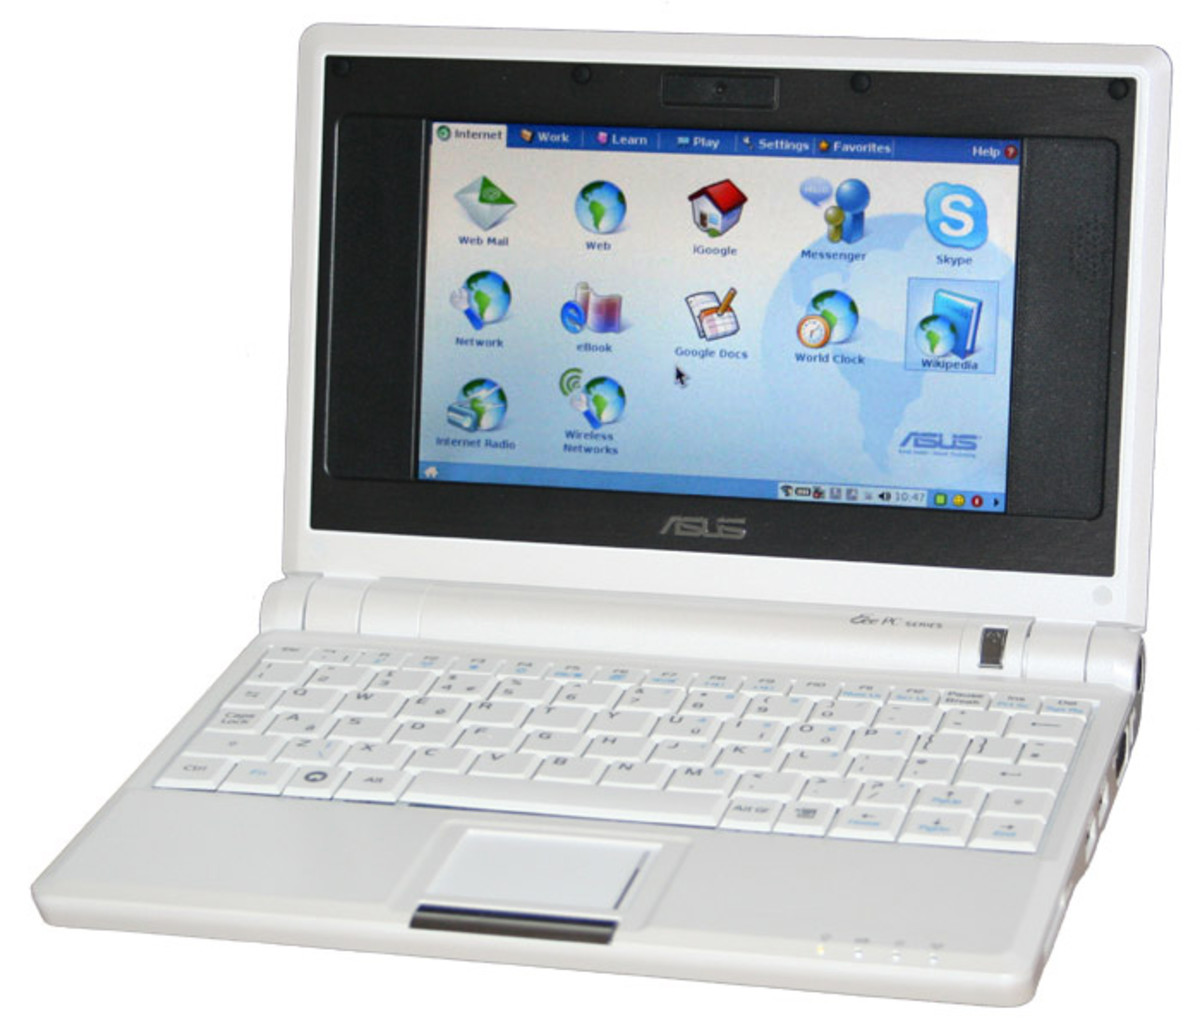 A White Asus Eee PC